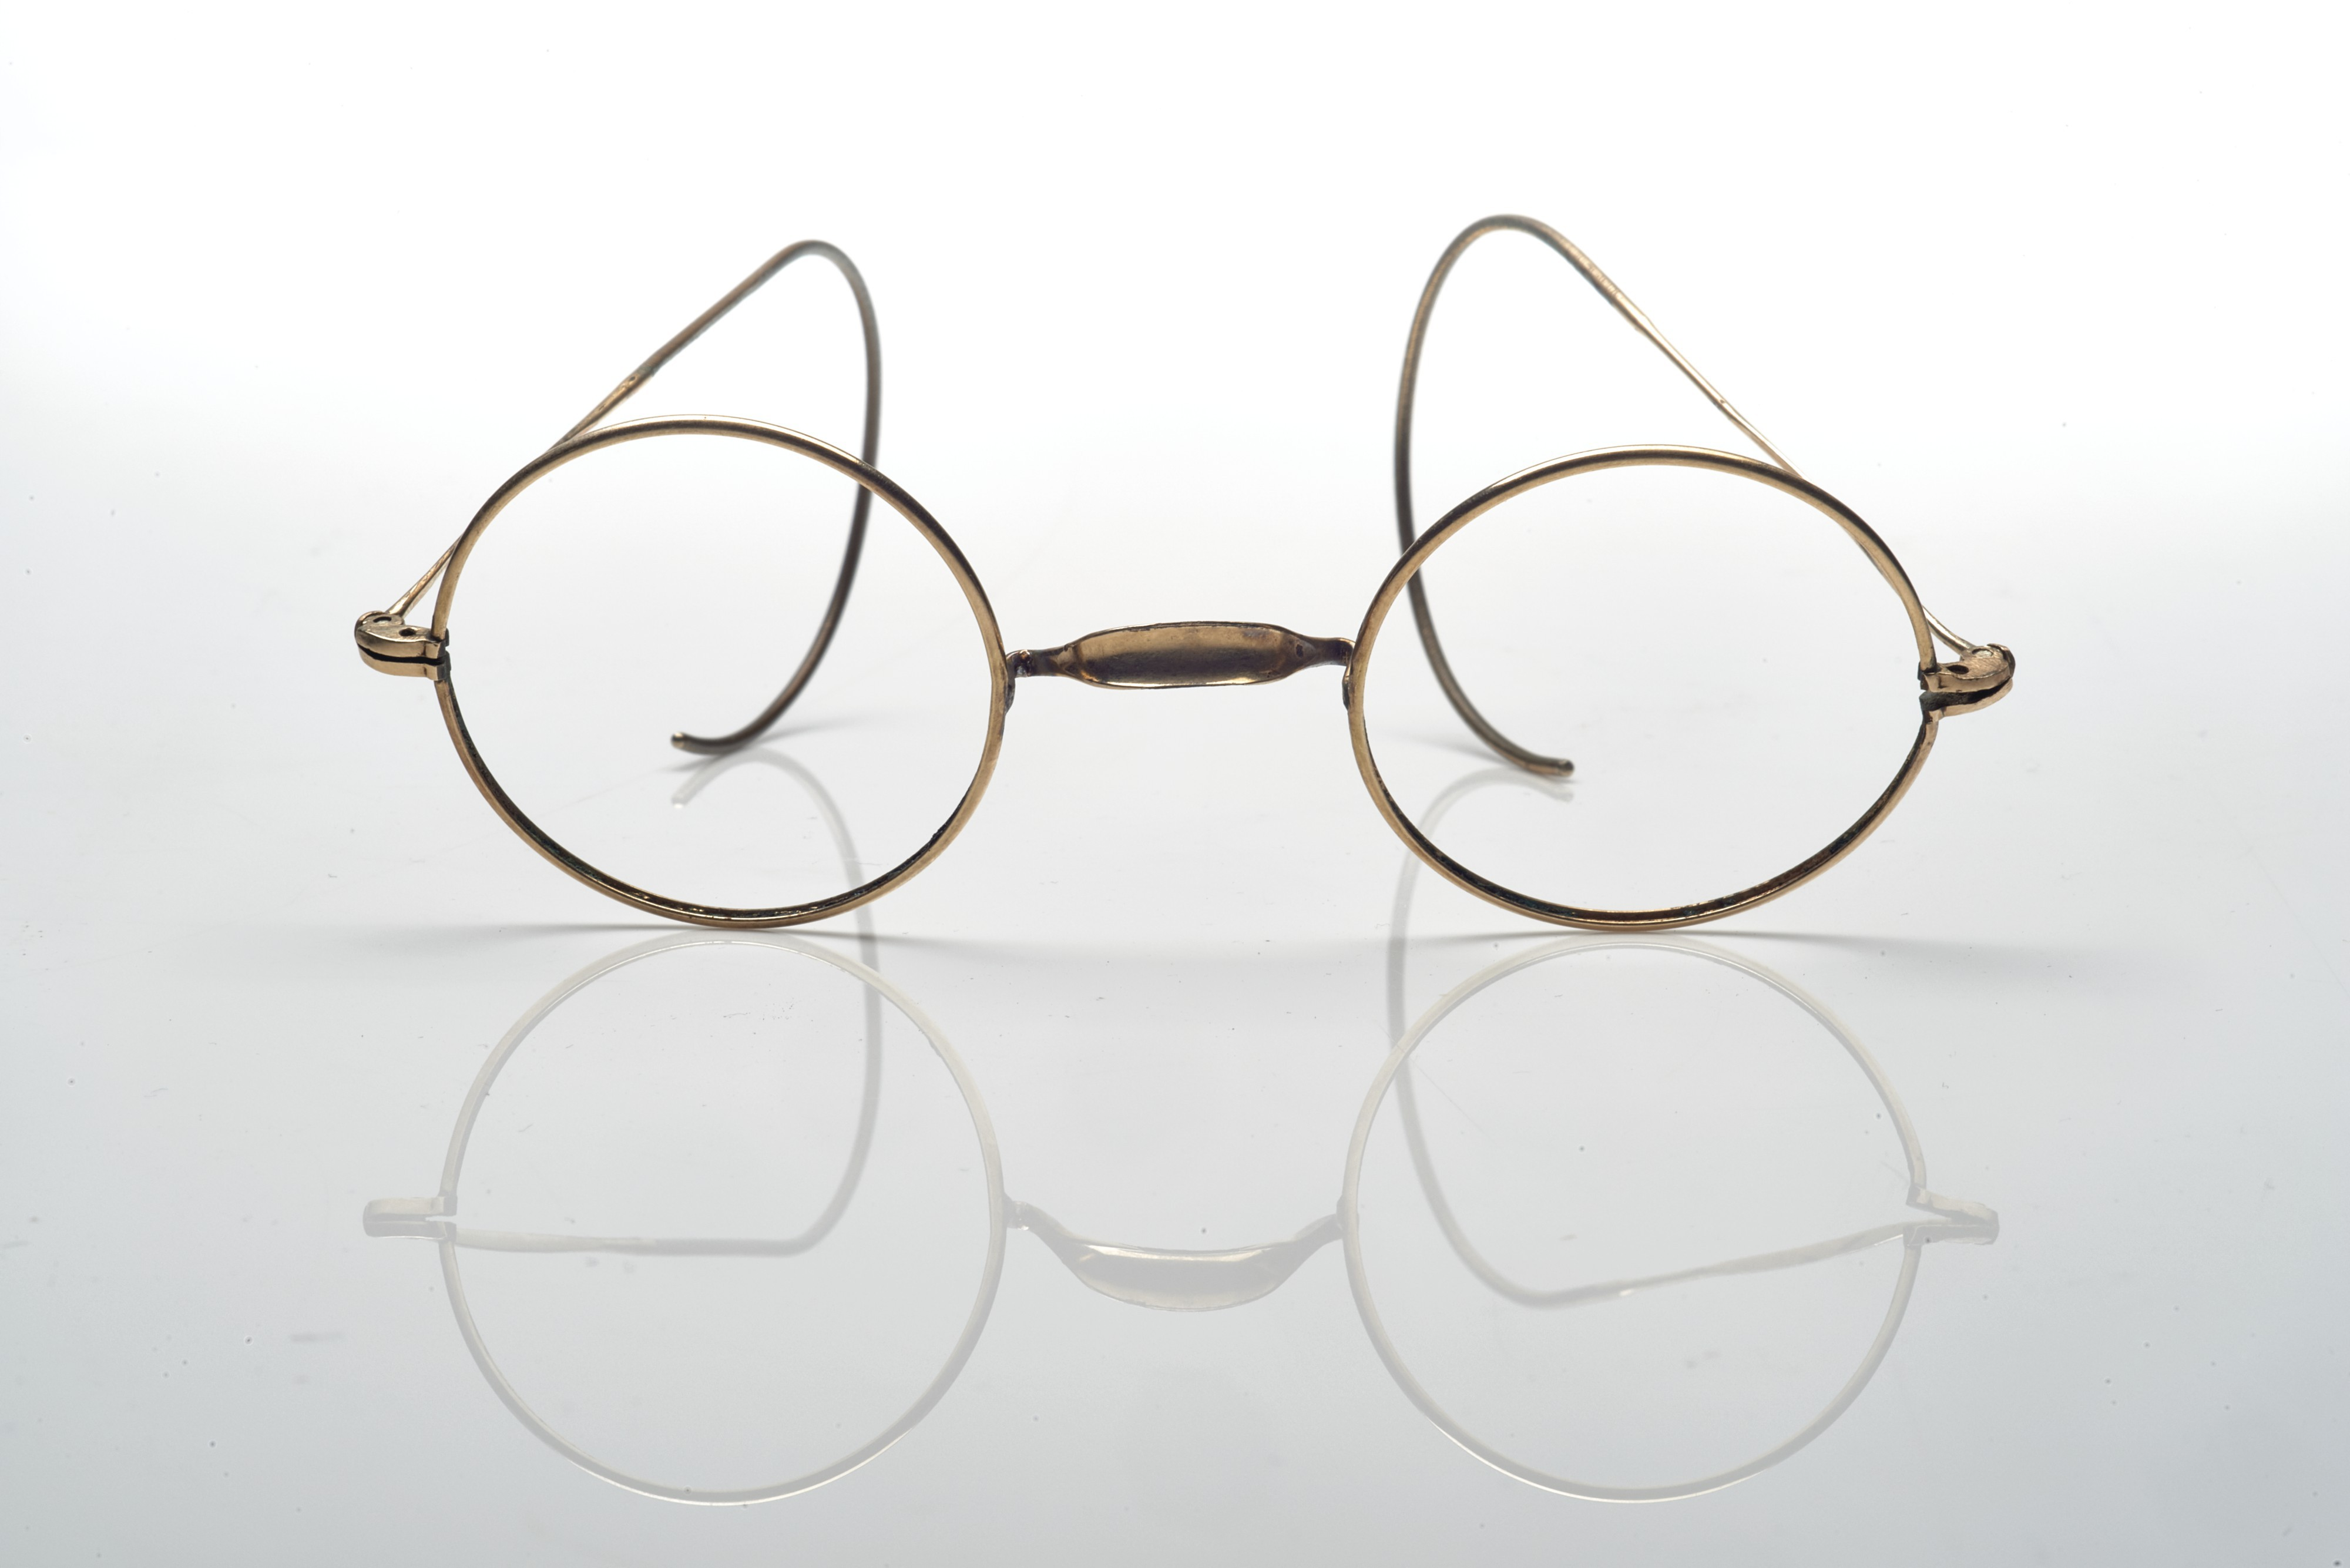 Lot 58: a pair of spectacles. A pair of golden metal spectacles, round eye wires and short temples terminating by flexible ends, illegible maker's mark. Estimate:  $1,000 - $1,500. ©Christie's Images Ltd, 2017.